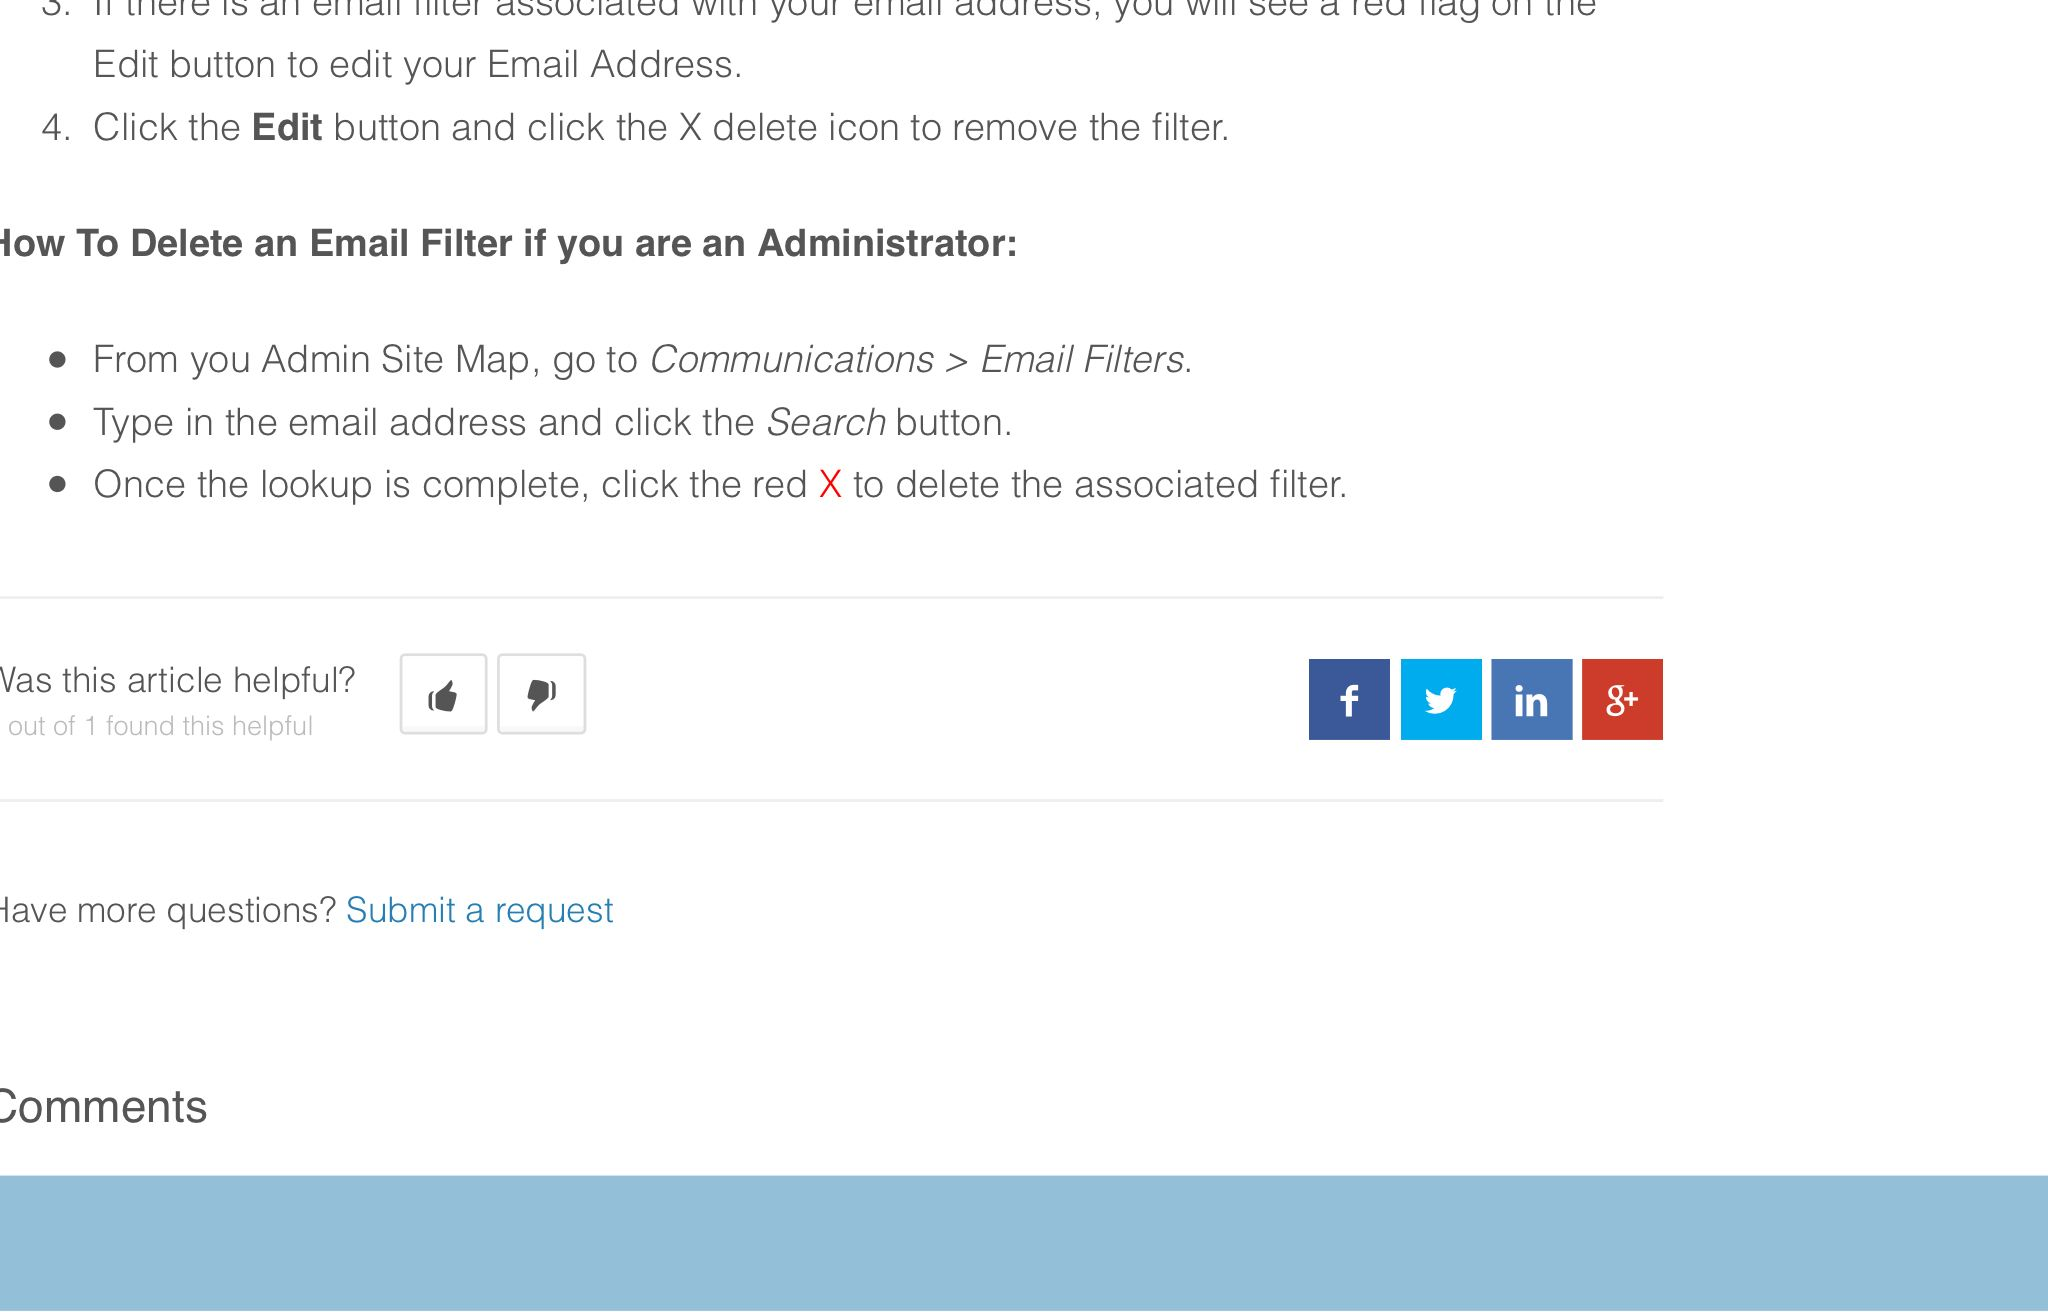 Https Support Teamsideline Com Hc En Us Articles 201151007 What Does The Red Flag Mean Next To An Email Address Red Flag Meaning Email Filter How To Remove